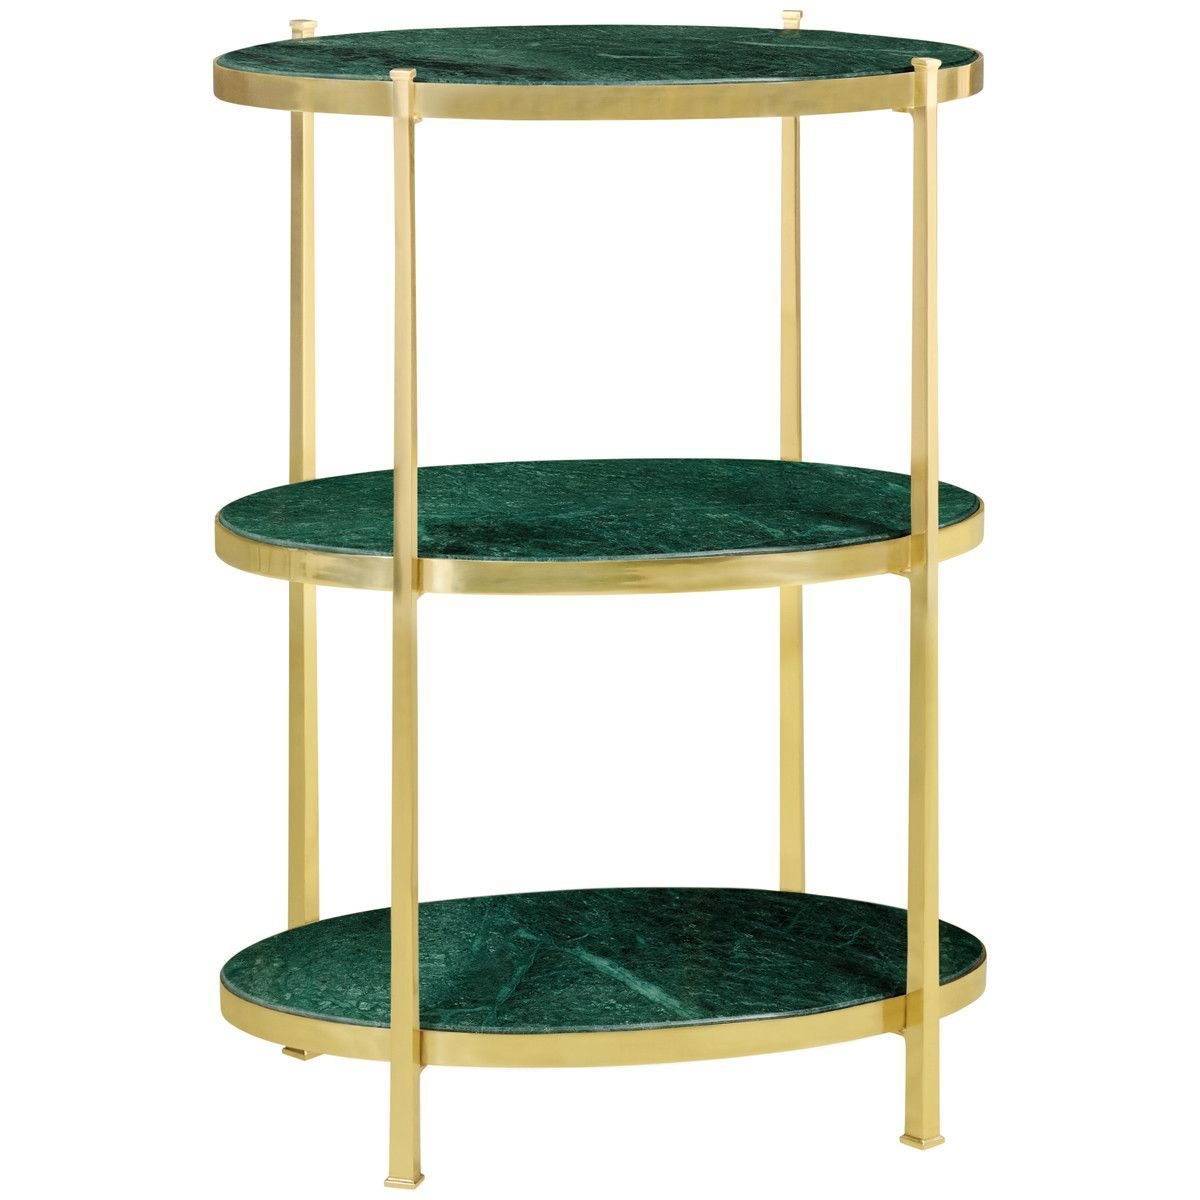 Jonathan Charles Marble and Polished Solid Brass Three-Tier Table